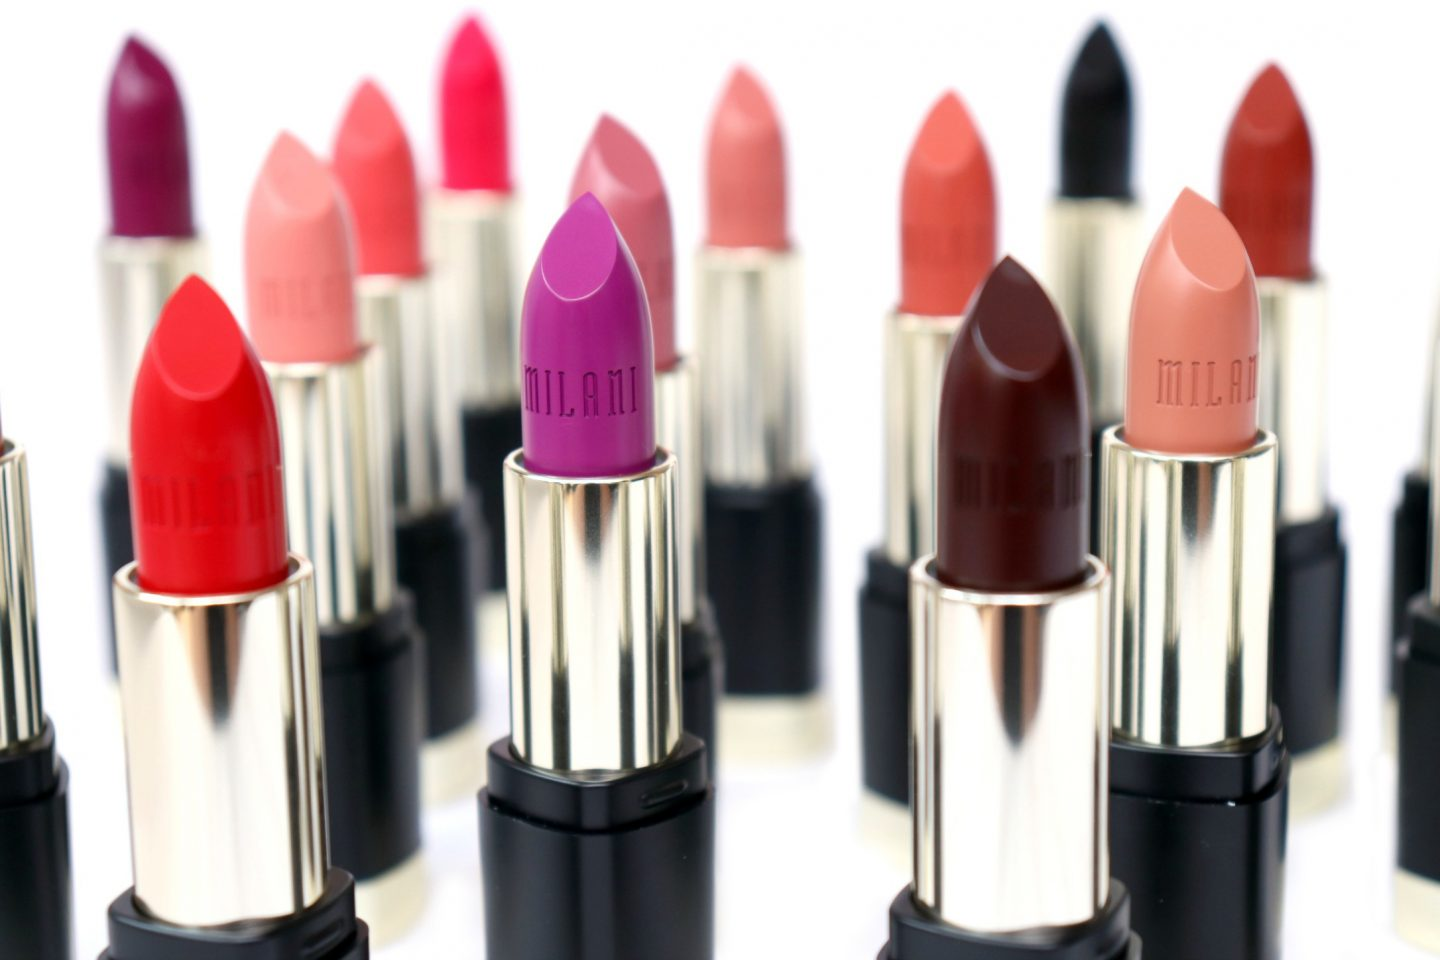 Milani Bold Color Statement Matte Lipstick Review